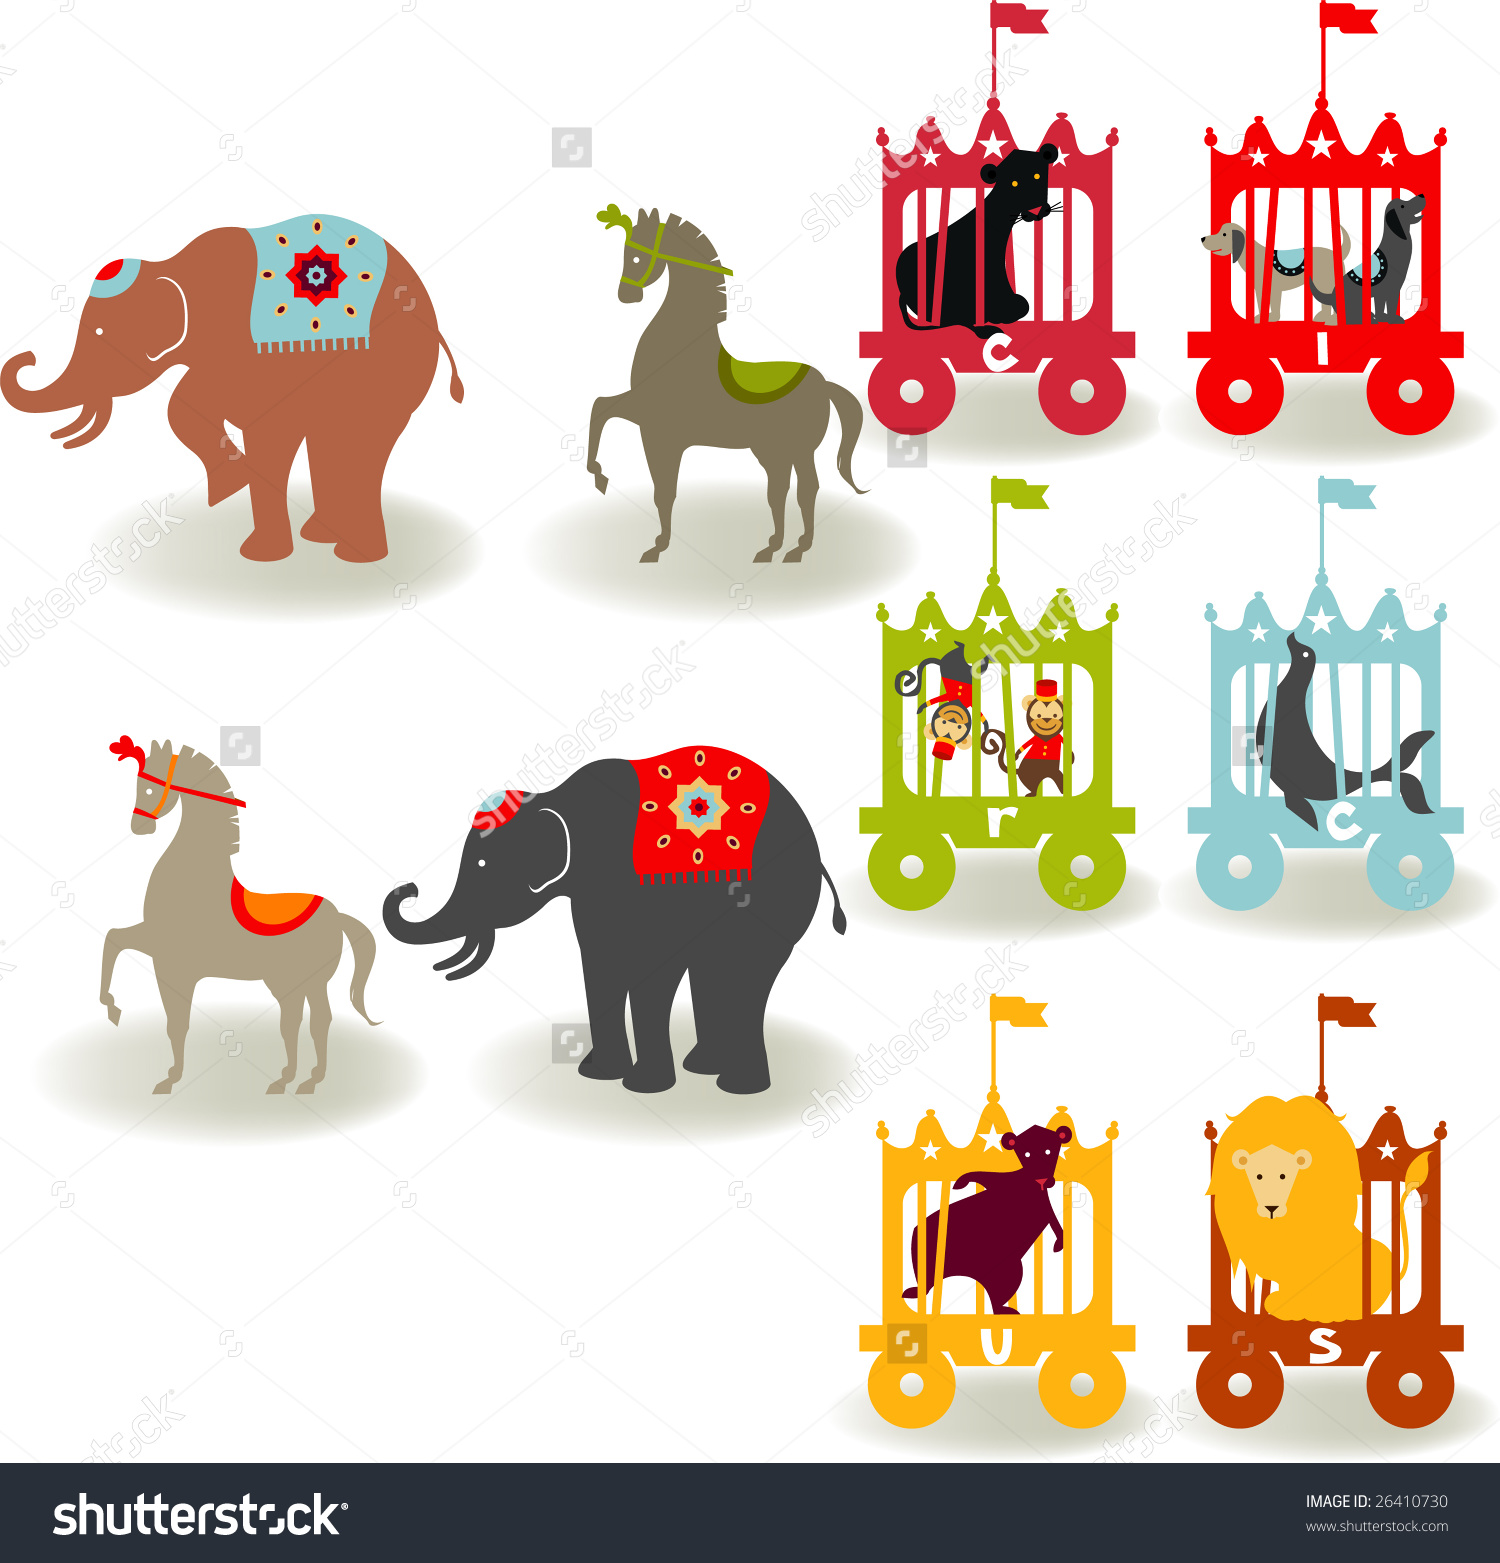 Circus Elements Like Elephants Horse Lion Stock Vector 26410730.